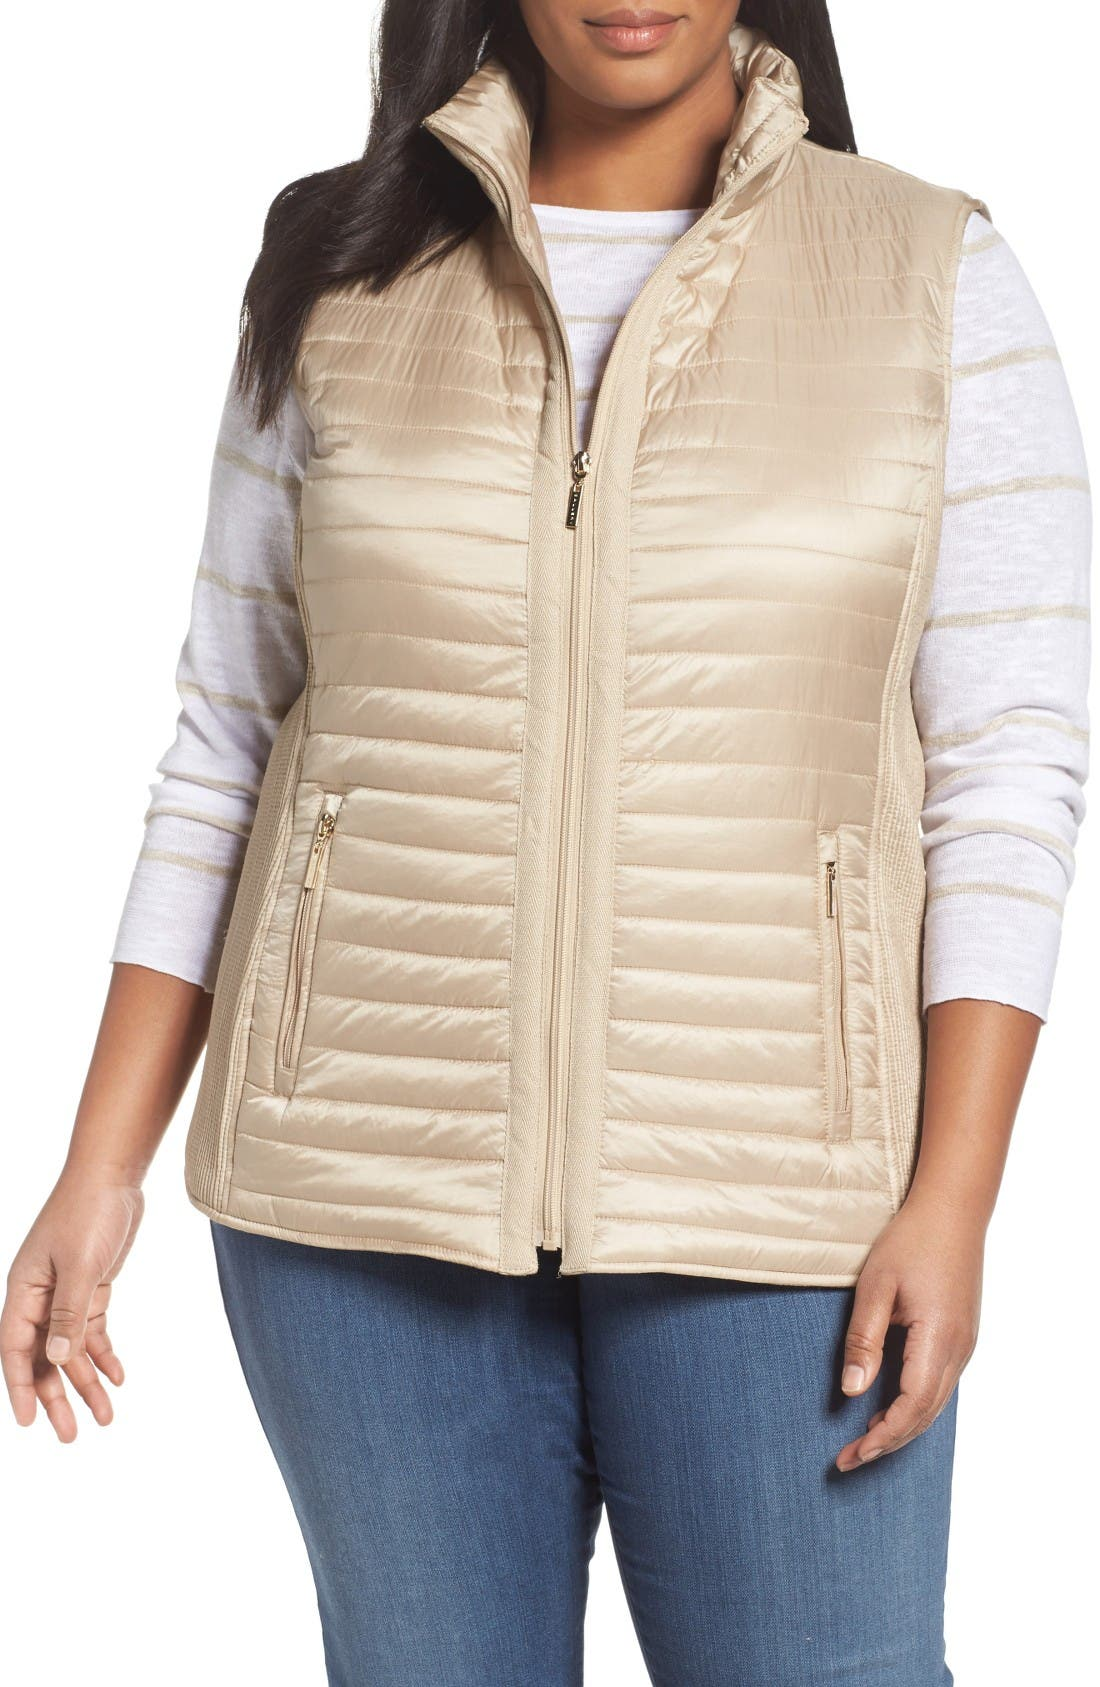 Alternate Image 1 Selected - Gallery Mixed Media Zip Front Vest (Plus Size)